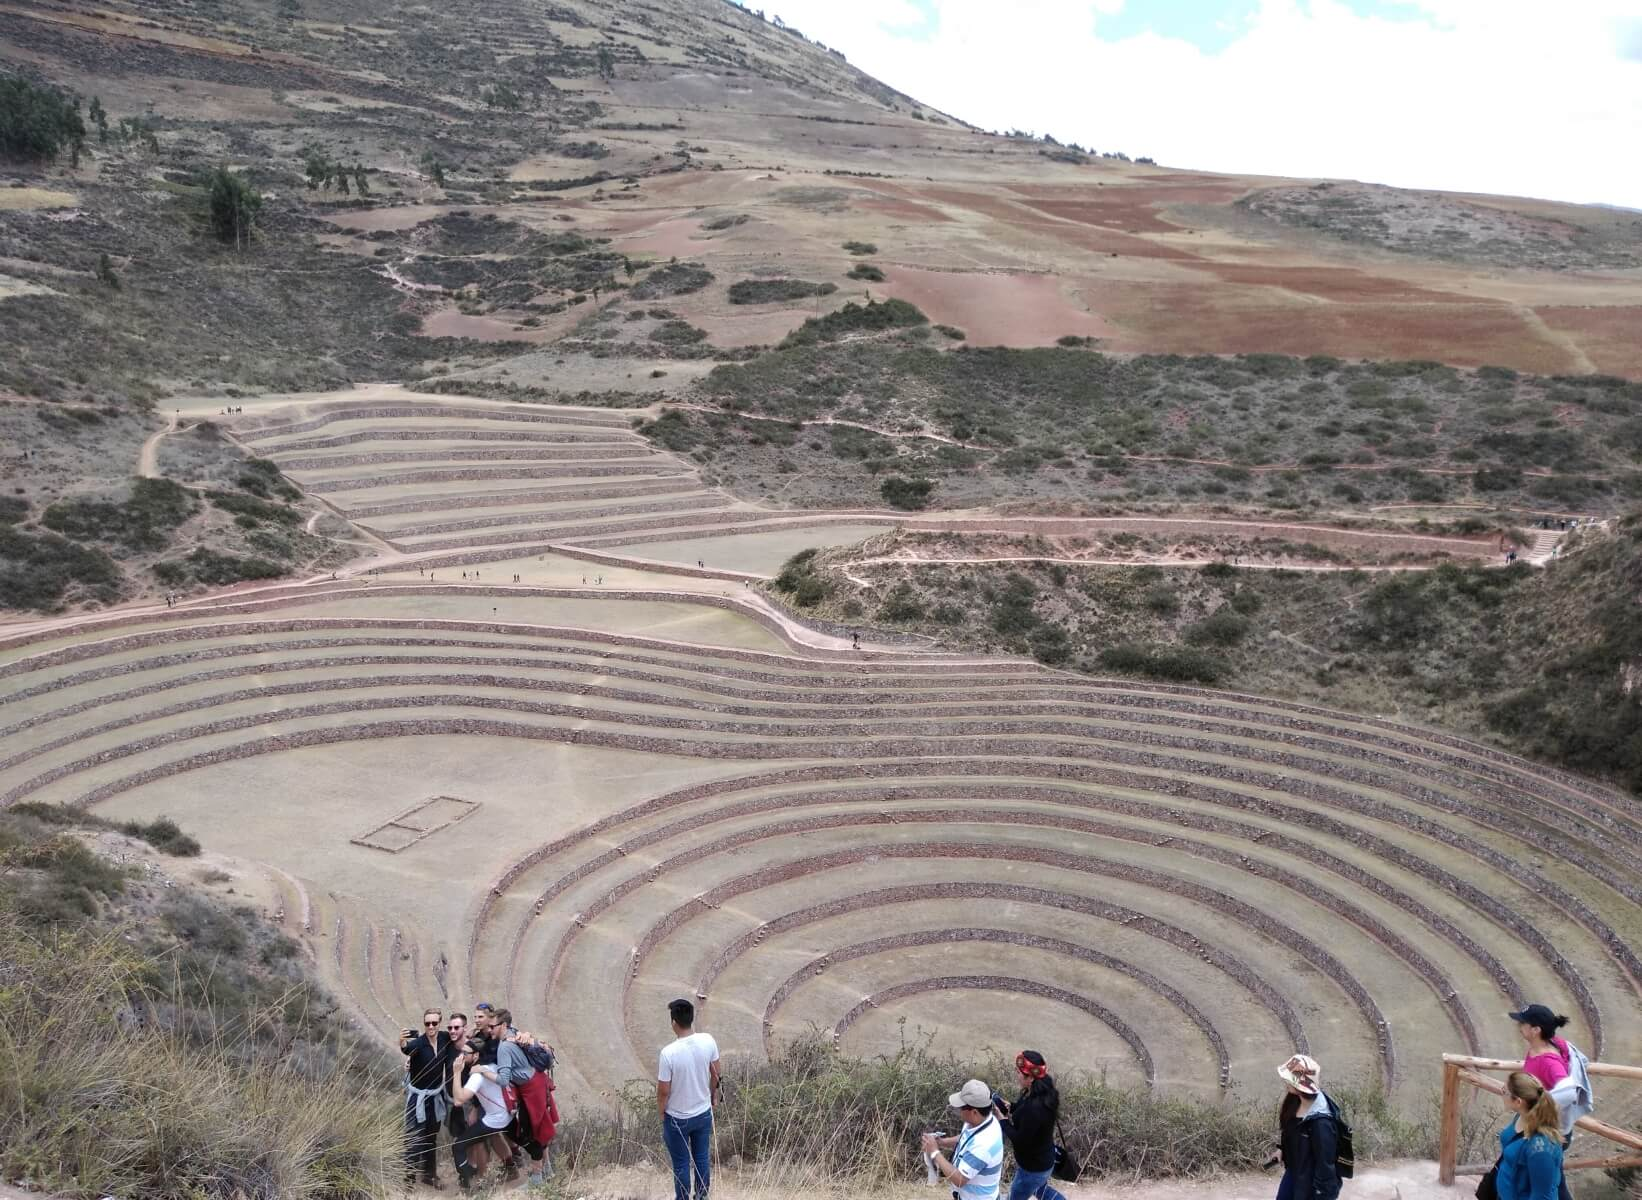 Inca Ruins of Moray